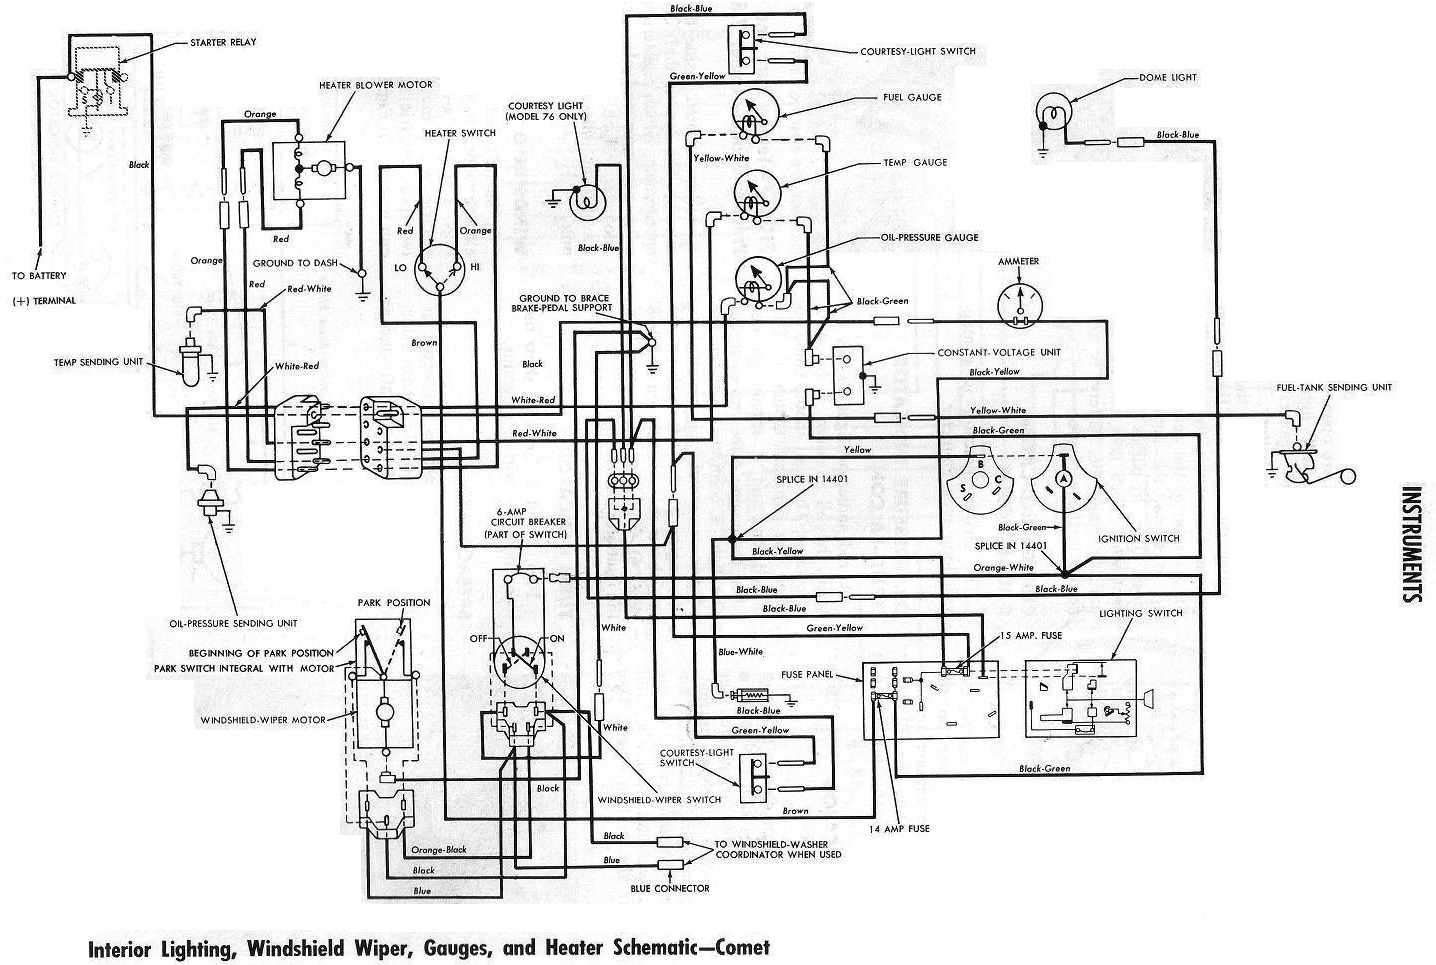 Outstanding Lma A Wiring Diagram Mold - Wiring Diagram Ideas ...